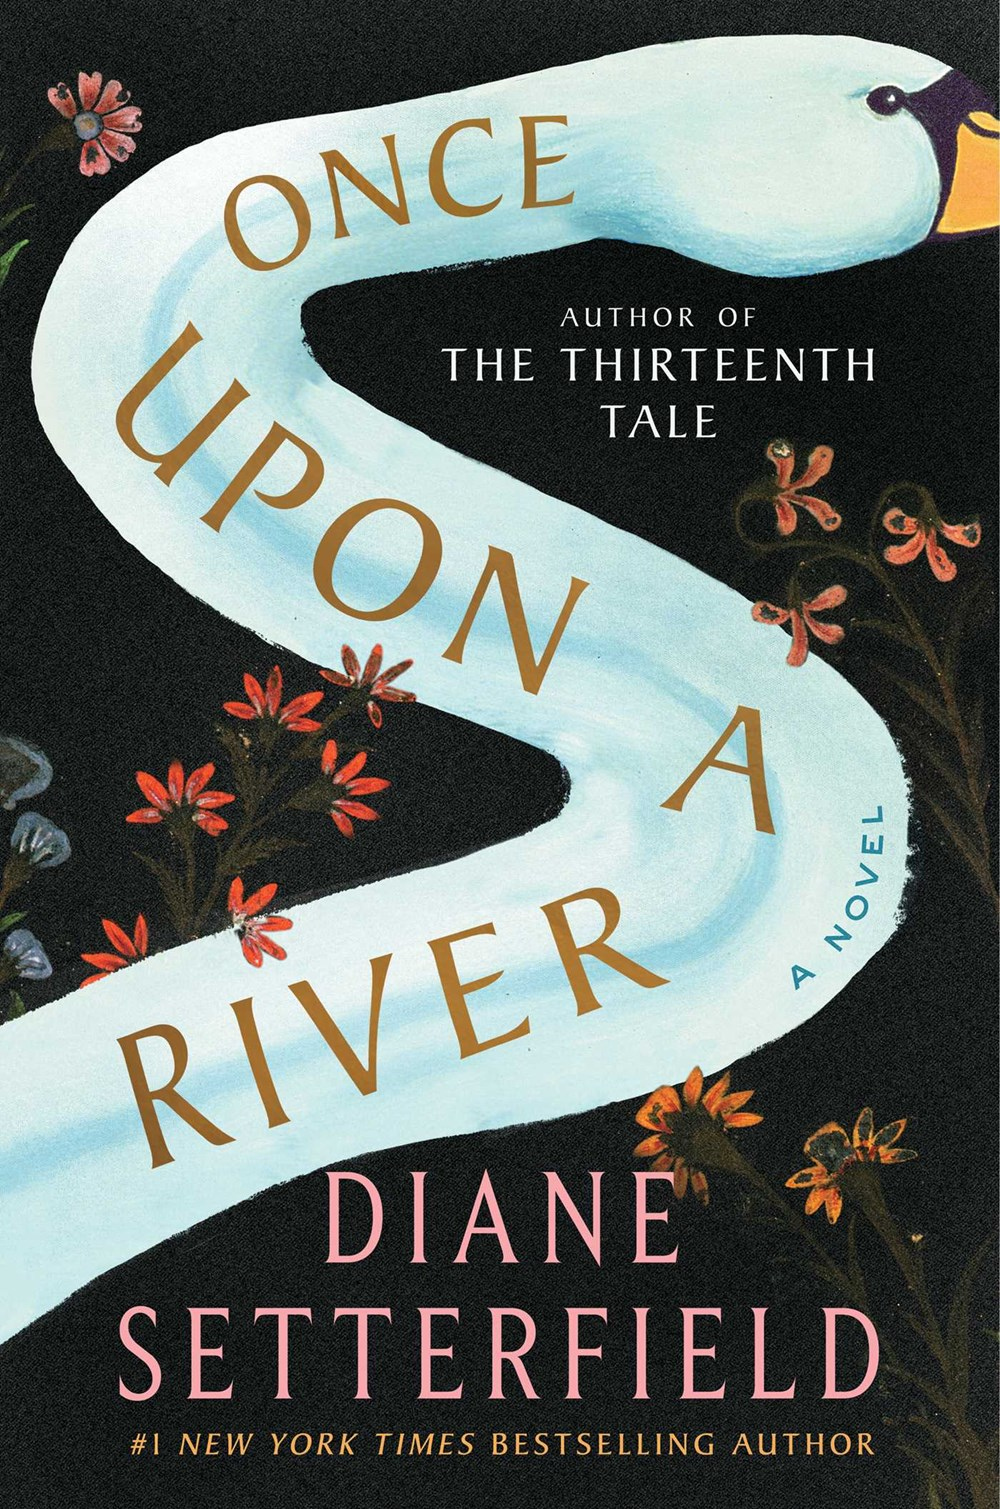 Once Upon A River Diane Setterfield Ya Lit Ramblings